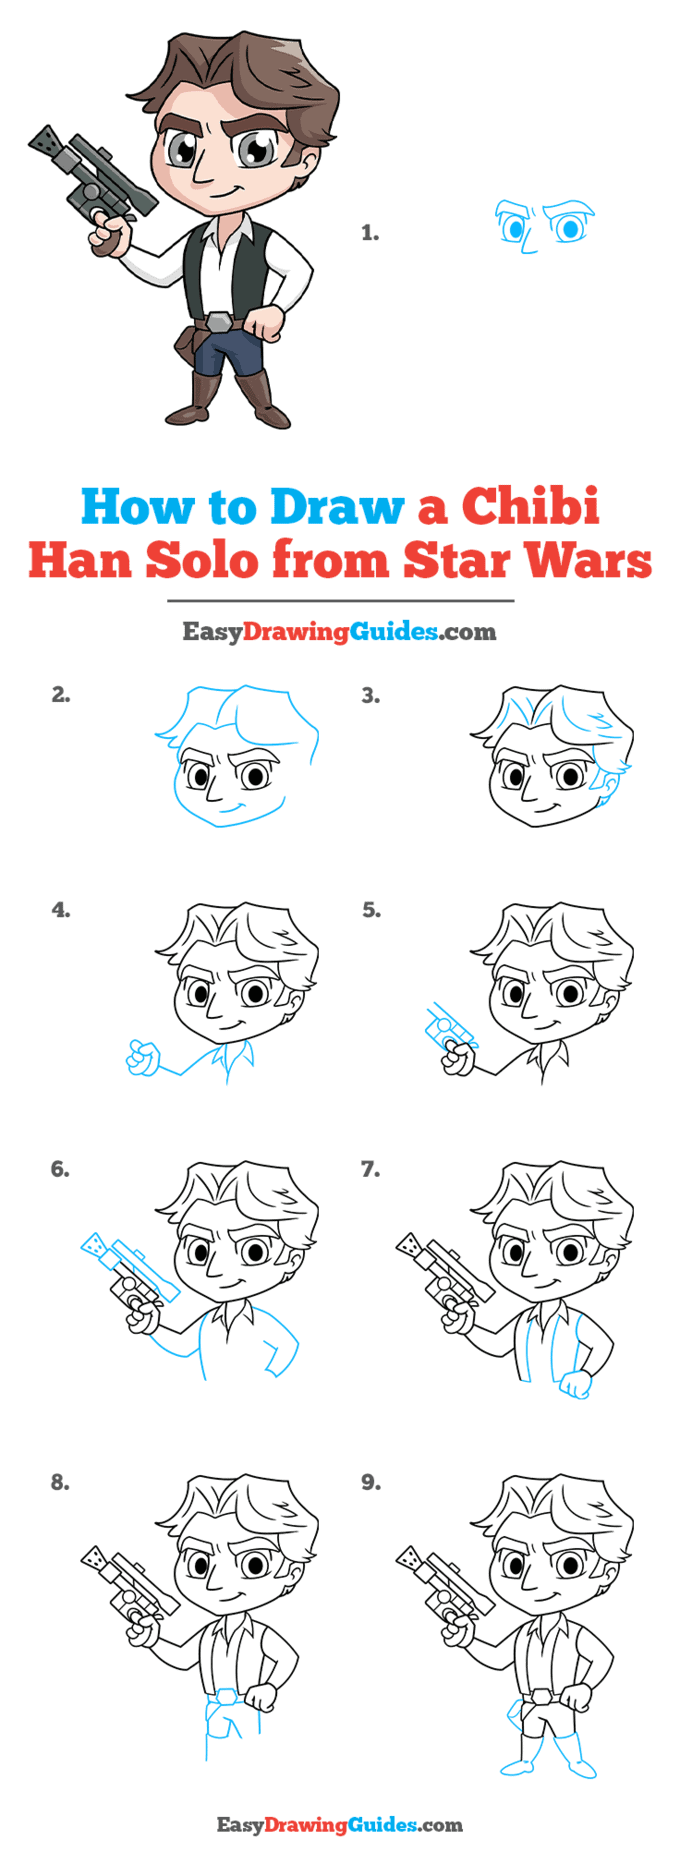 How to Draw a Chibi Han Solo from Star Wars Step by Step Tutorial Image